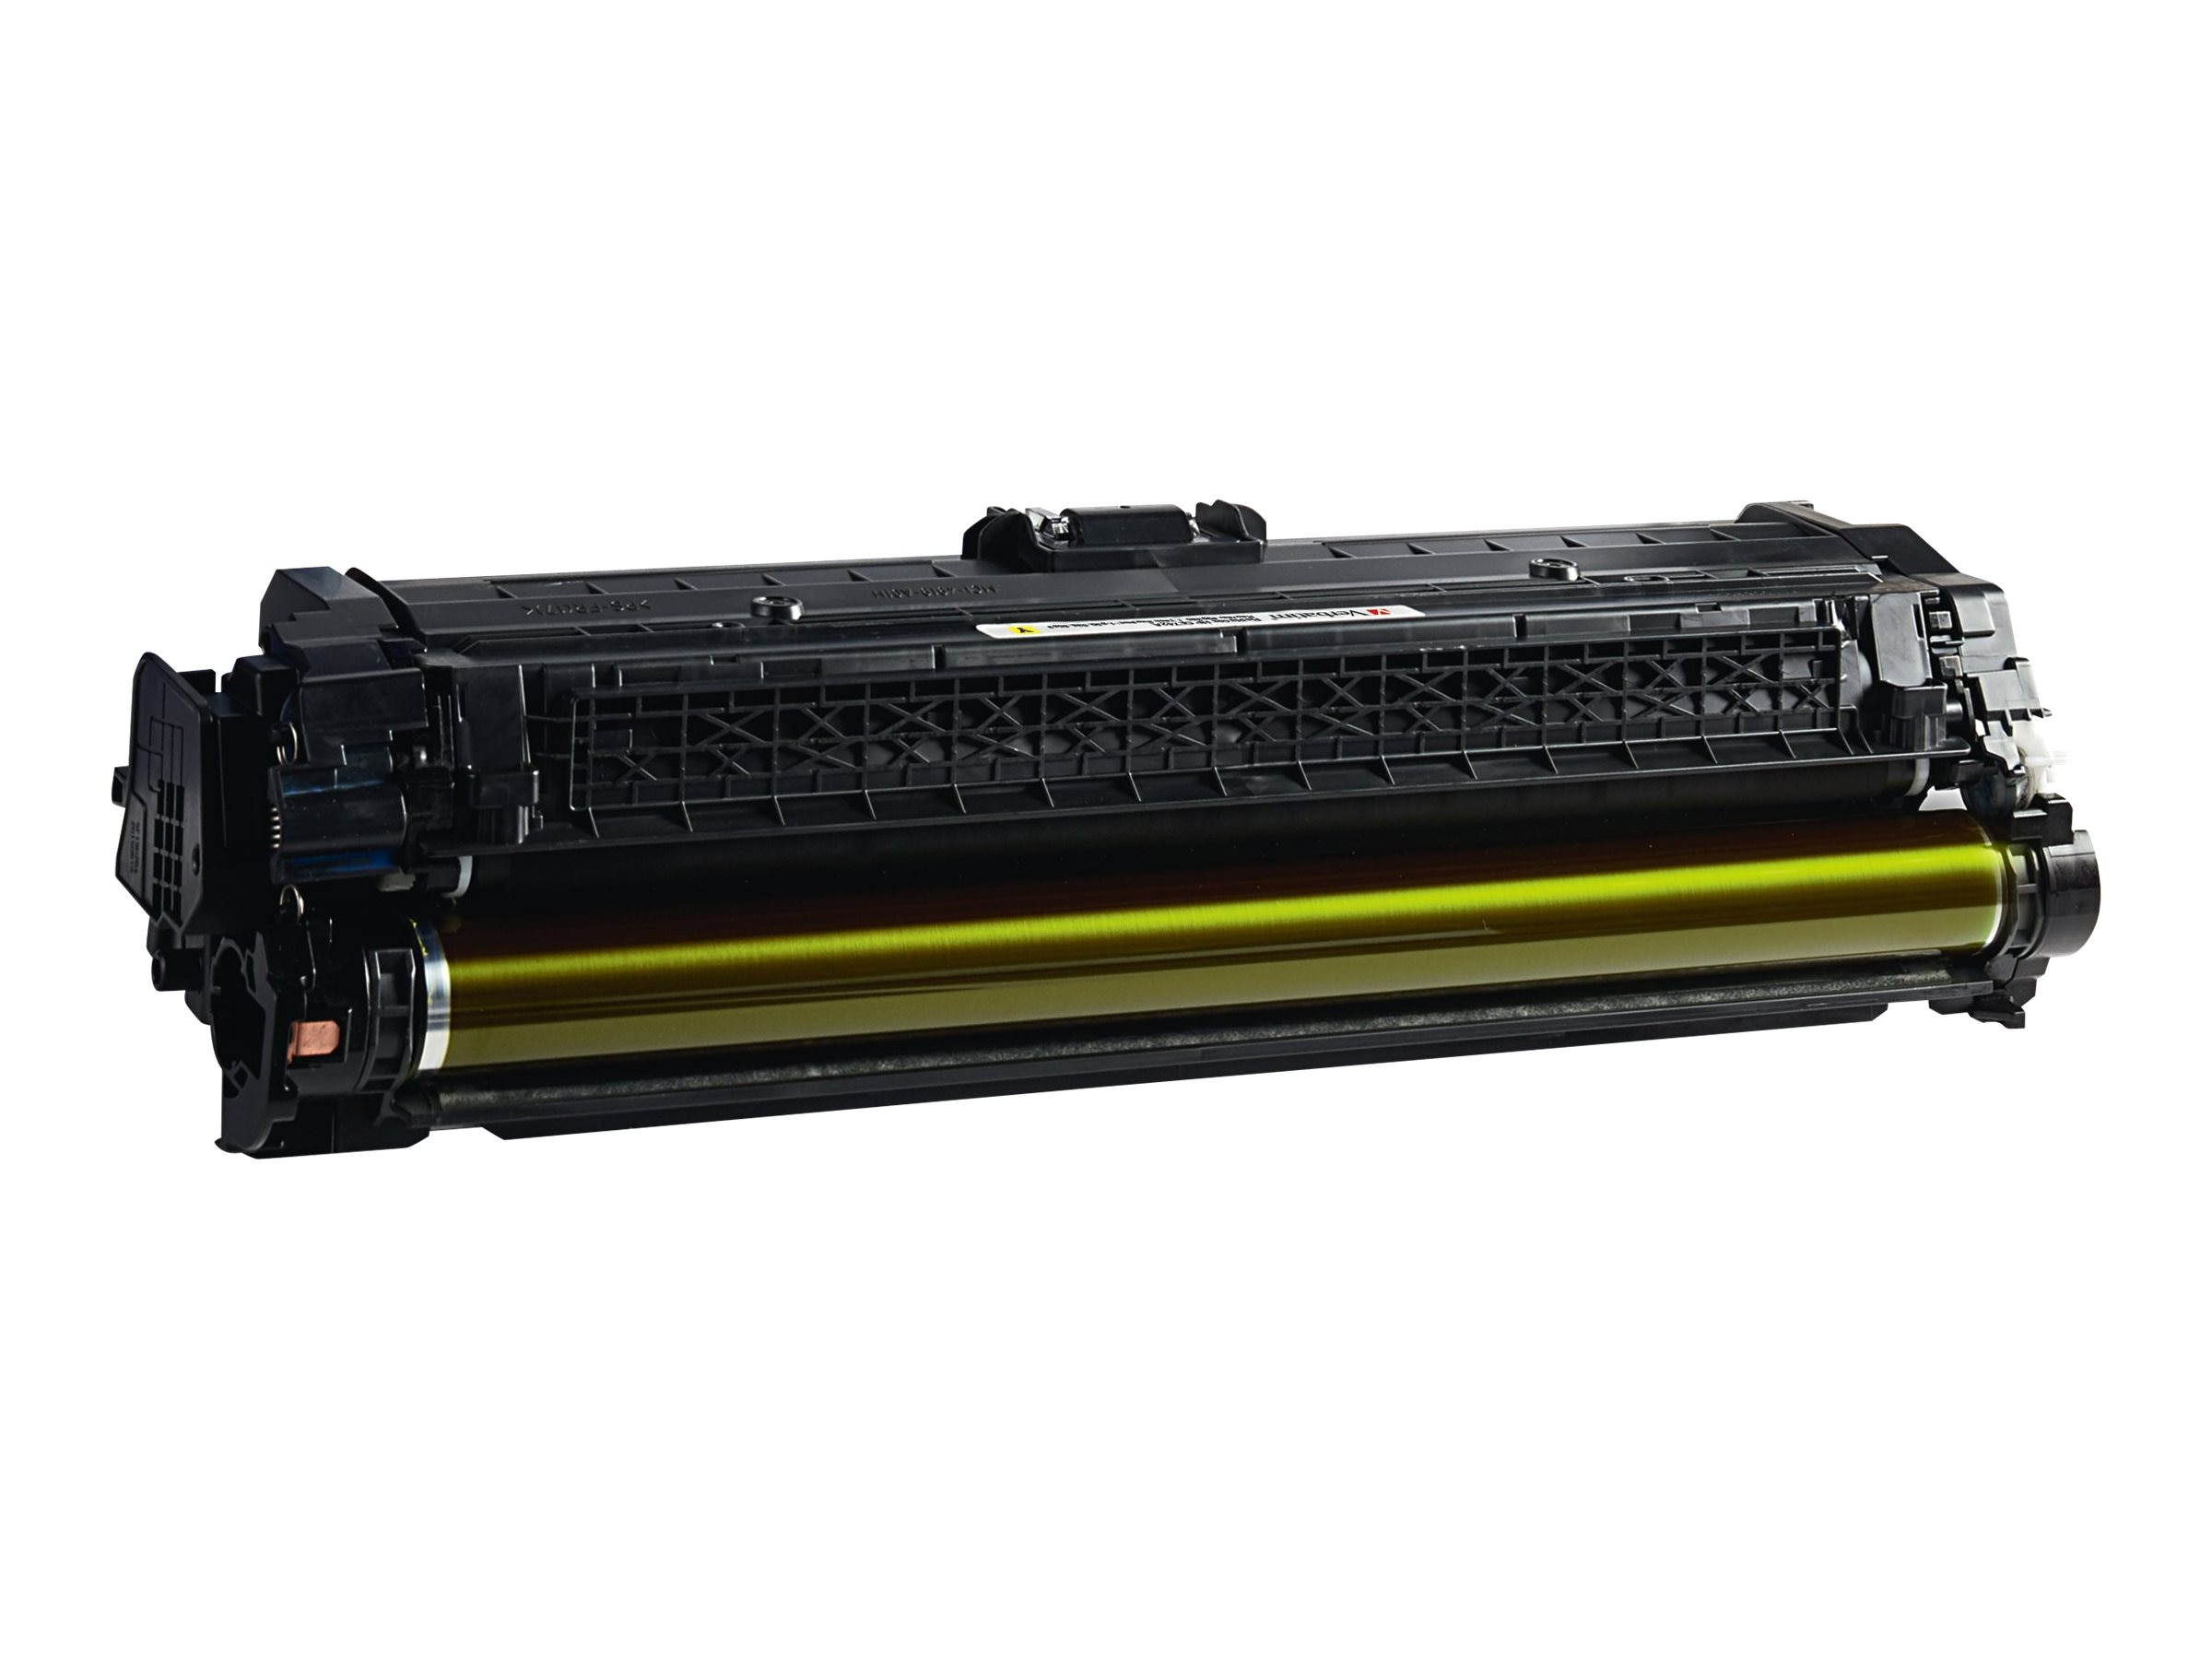 Verbatim CE742A Yellow Remanufactured Toner Cartridge for HP